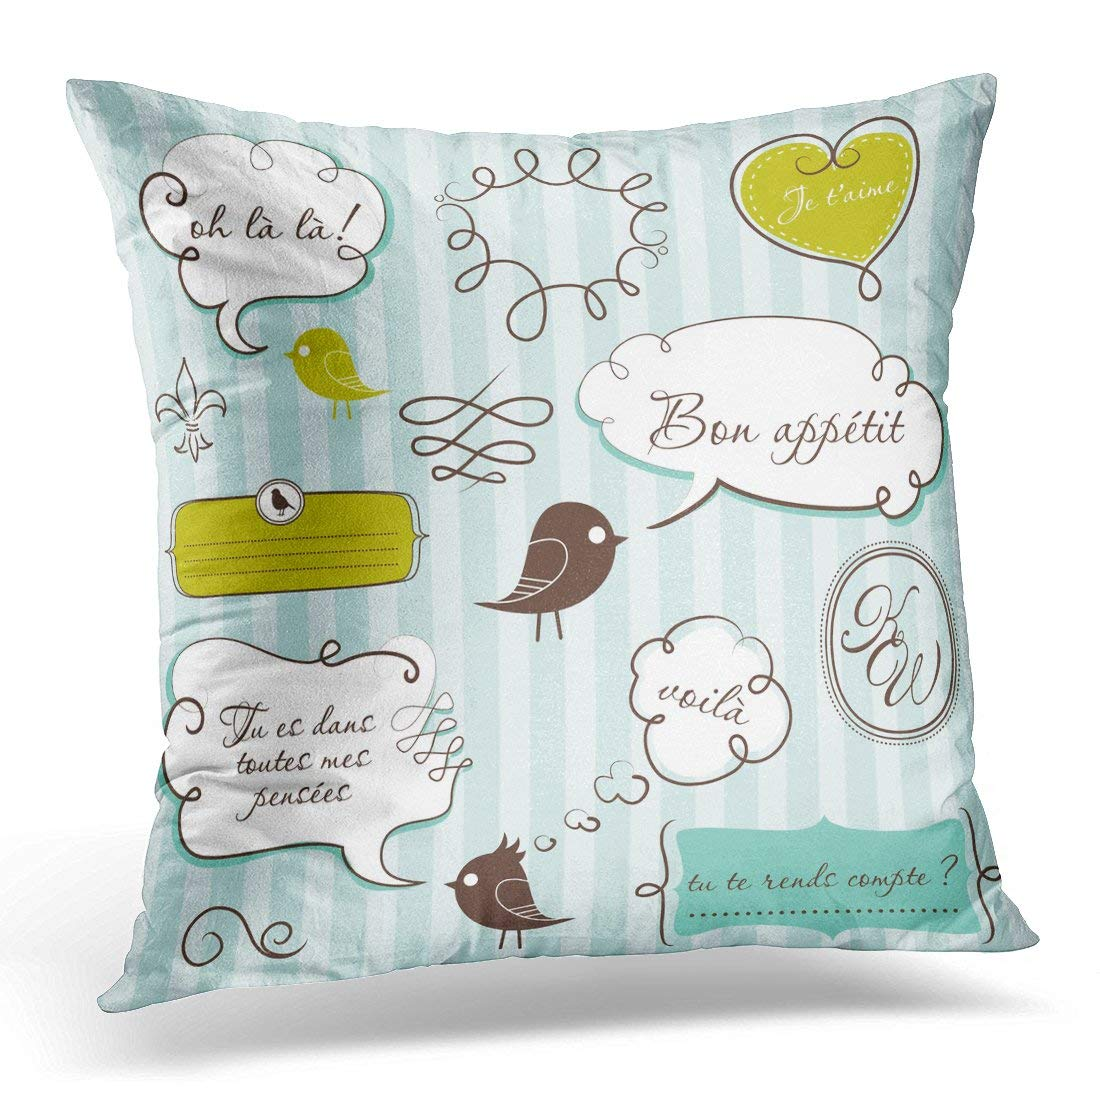 ARHOME Teen Speech Bubbles in French Style Love Pillow Case Pillow Cover 20x20 inch